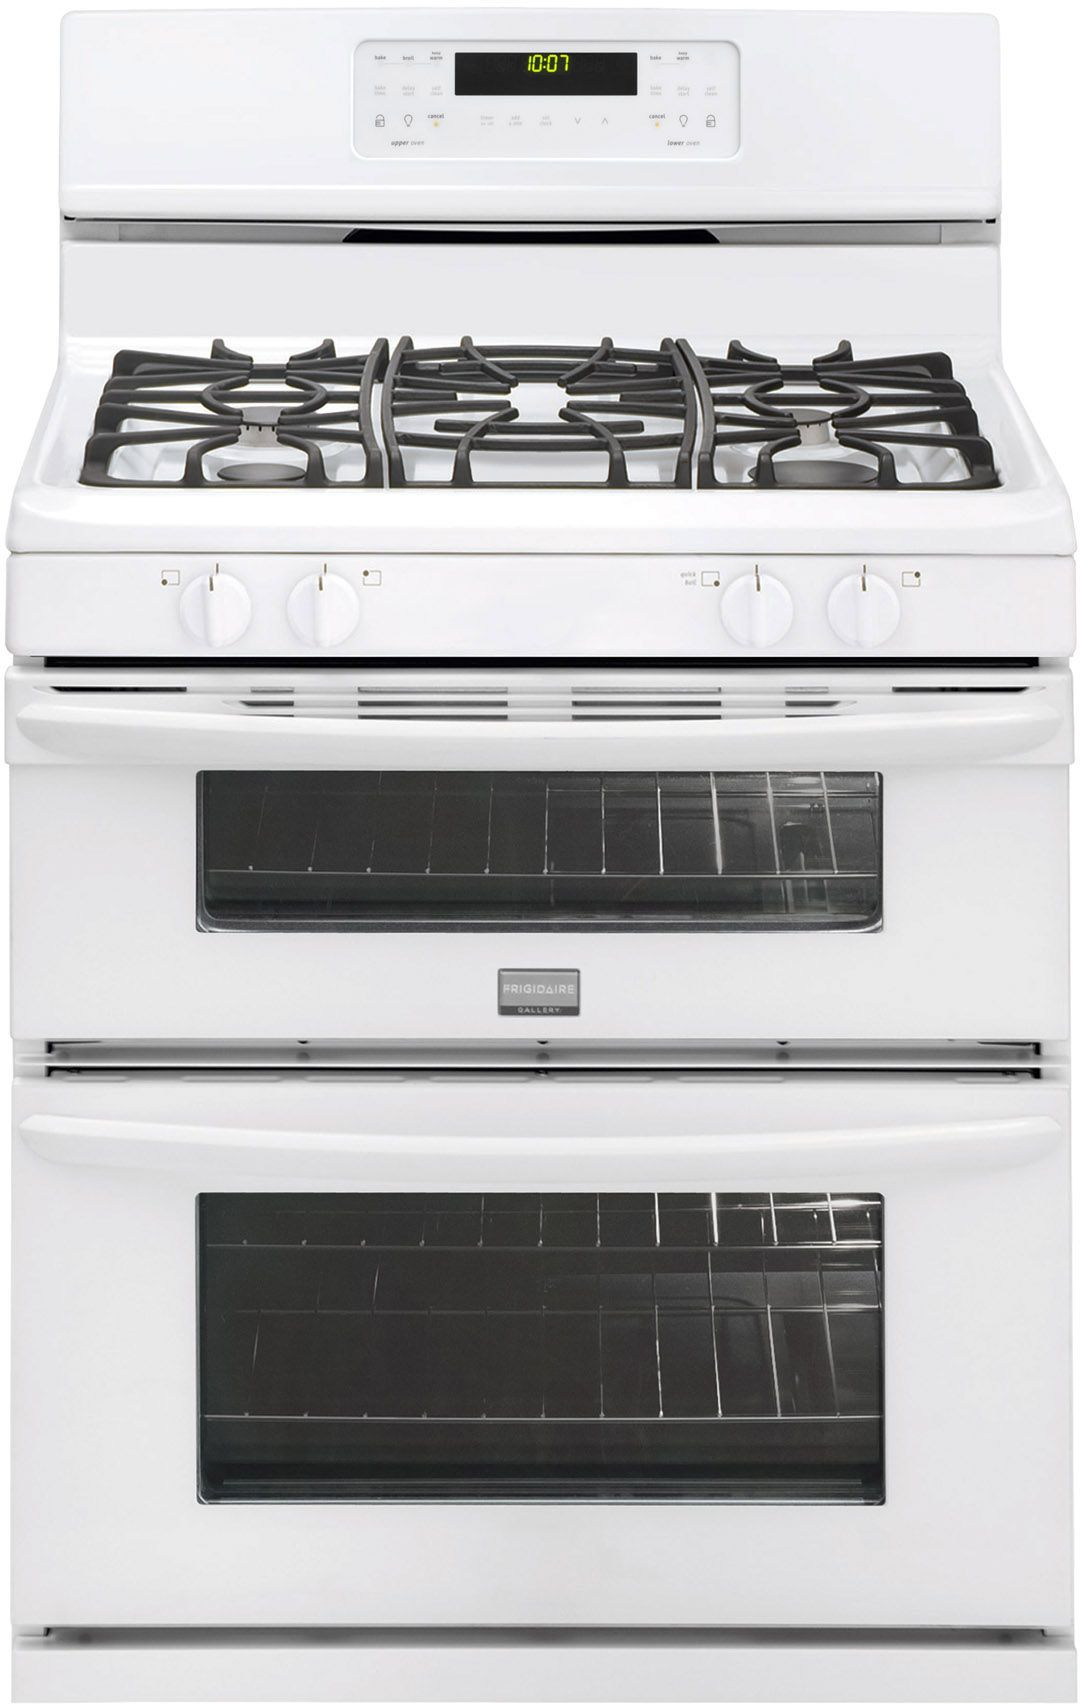 Frigidaire Gallery 6.7 cu. ft. Double-Oven Gas Range - White Review Buy Now